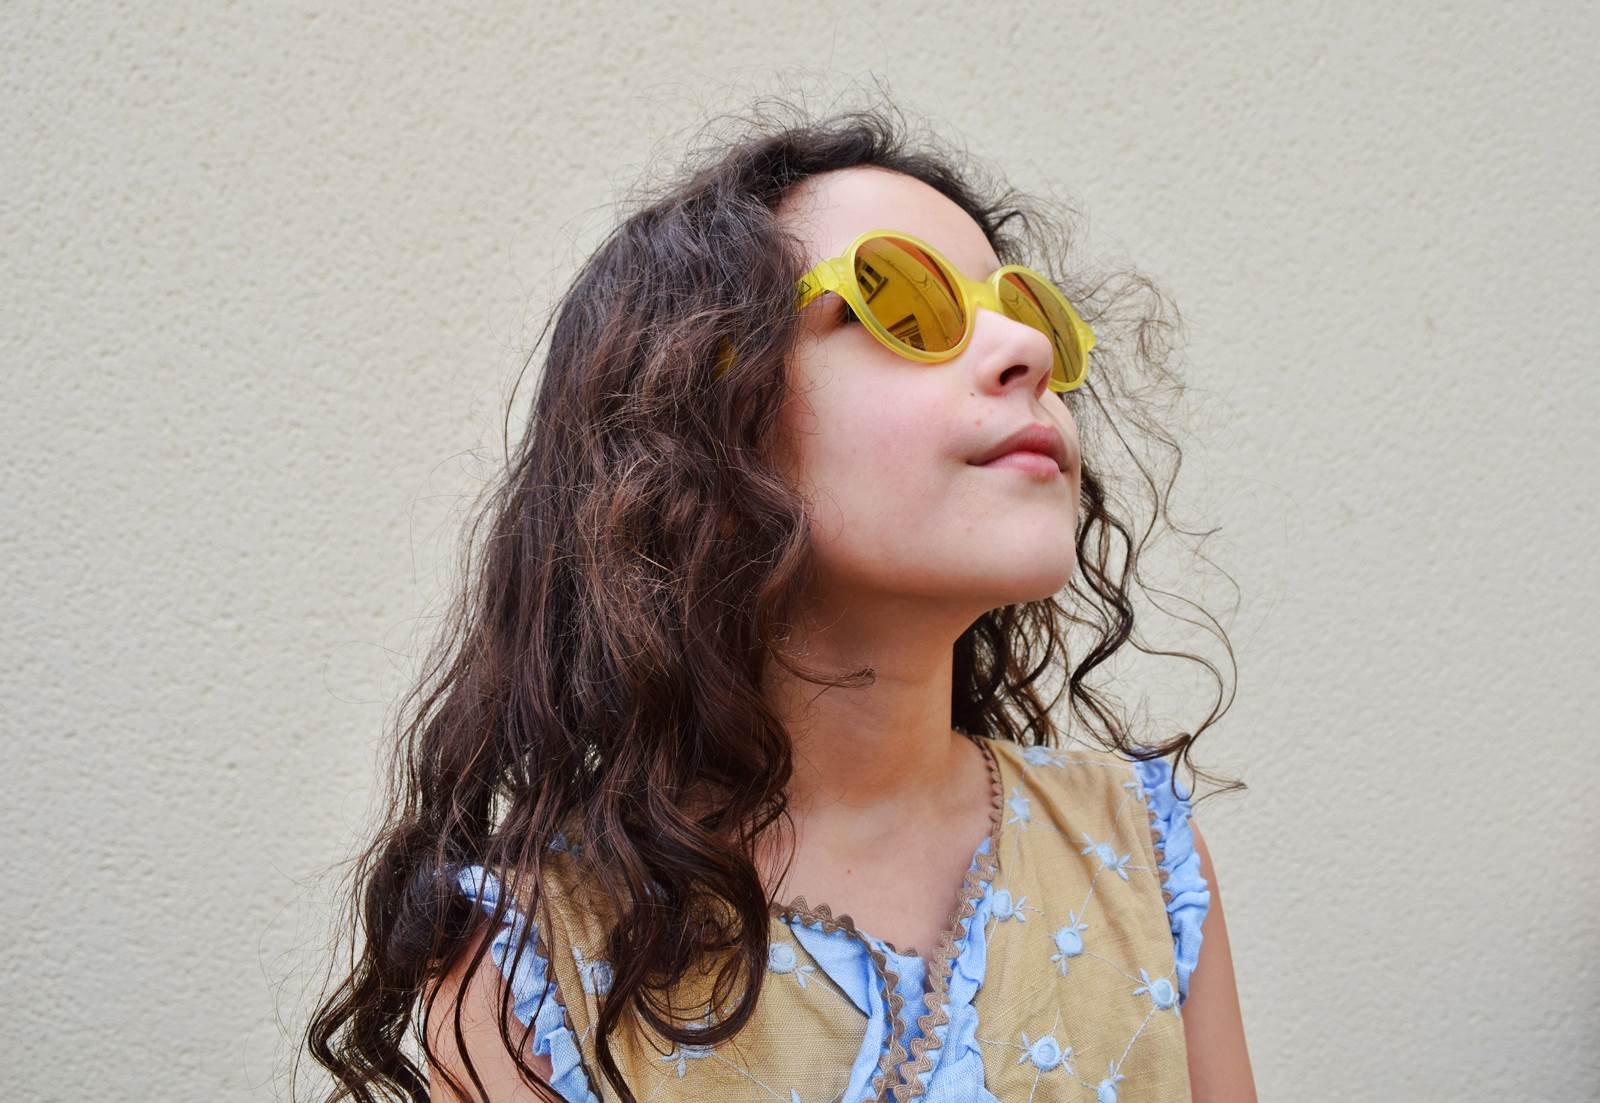 Blog ambassadeur little eleven paris lunette 12